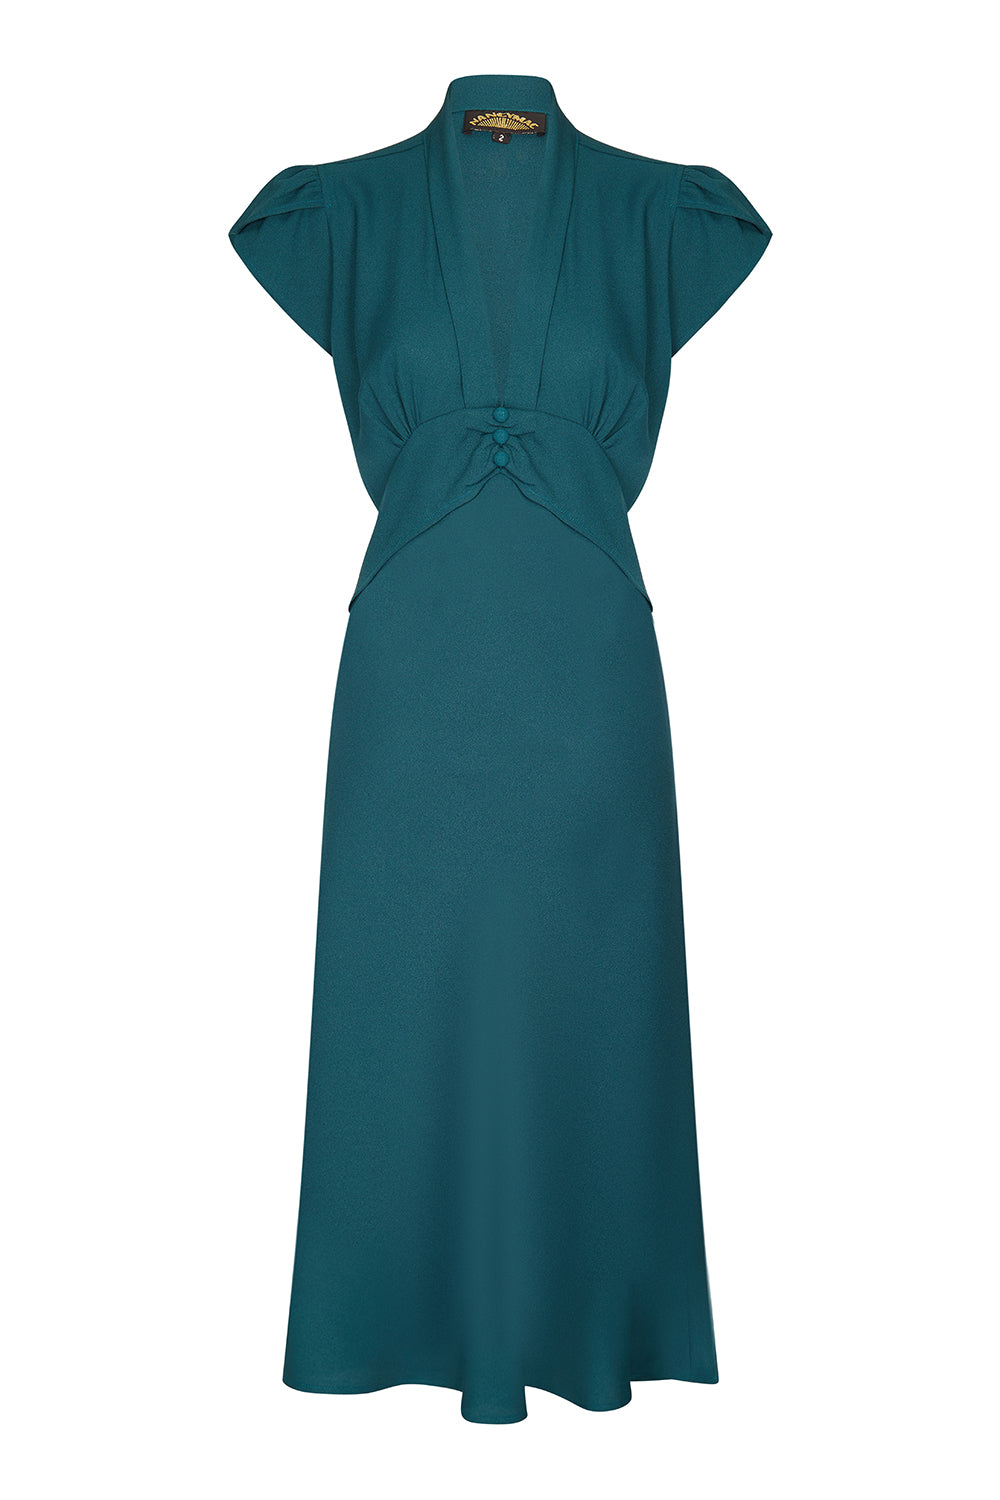 Nancy Mac Sable long-sleeve dress in emerald crepe - front mannequin shot